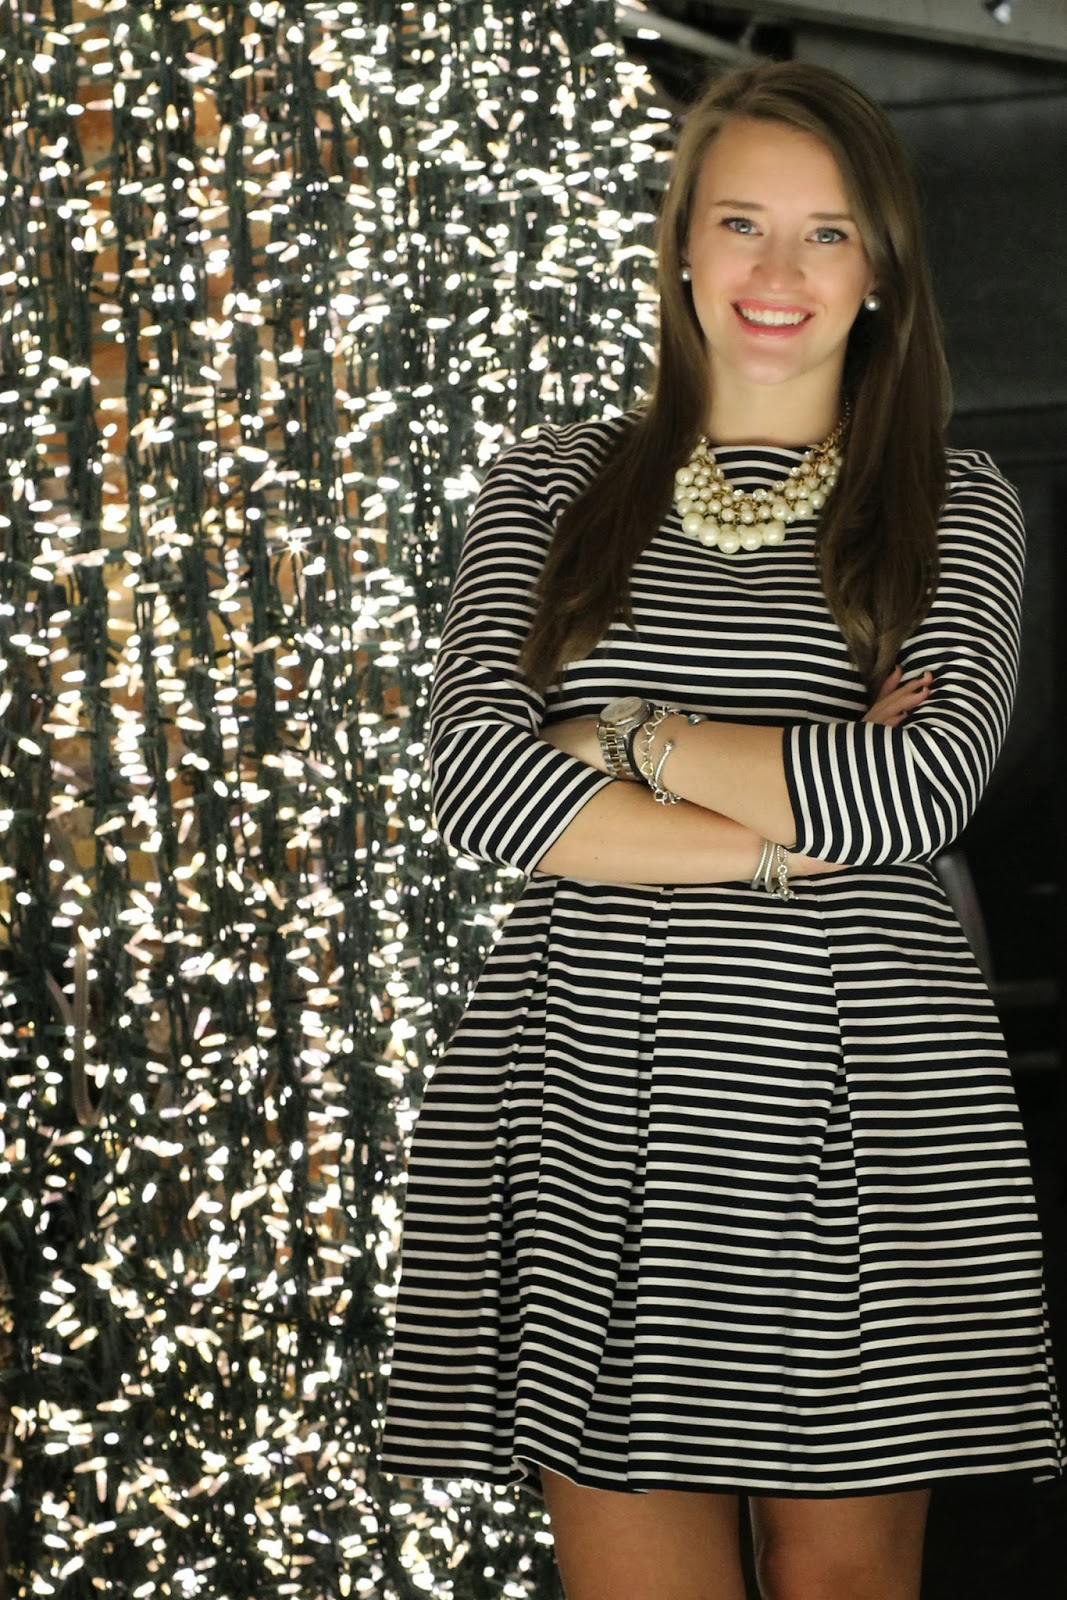 krista robertson, southern shopaholic, fashion blog